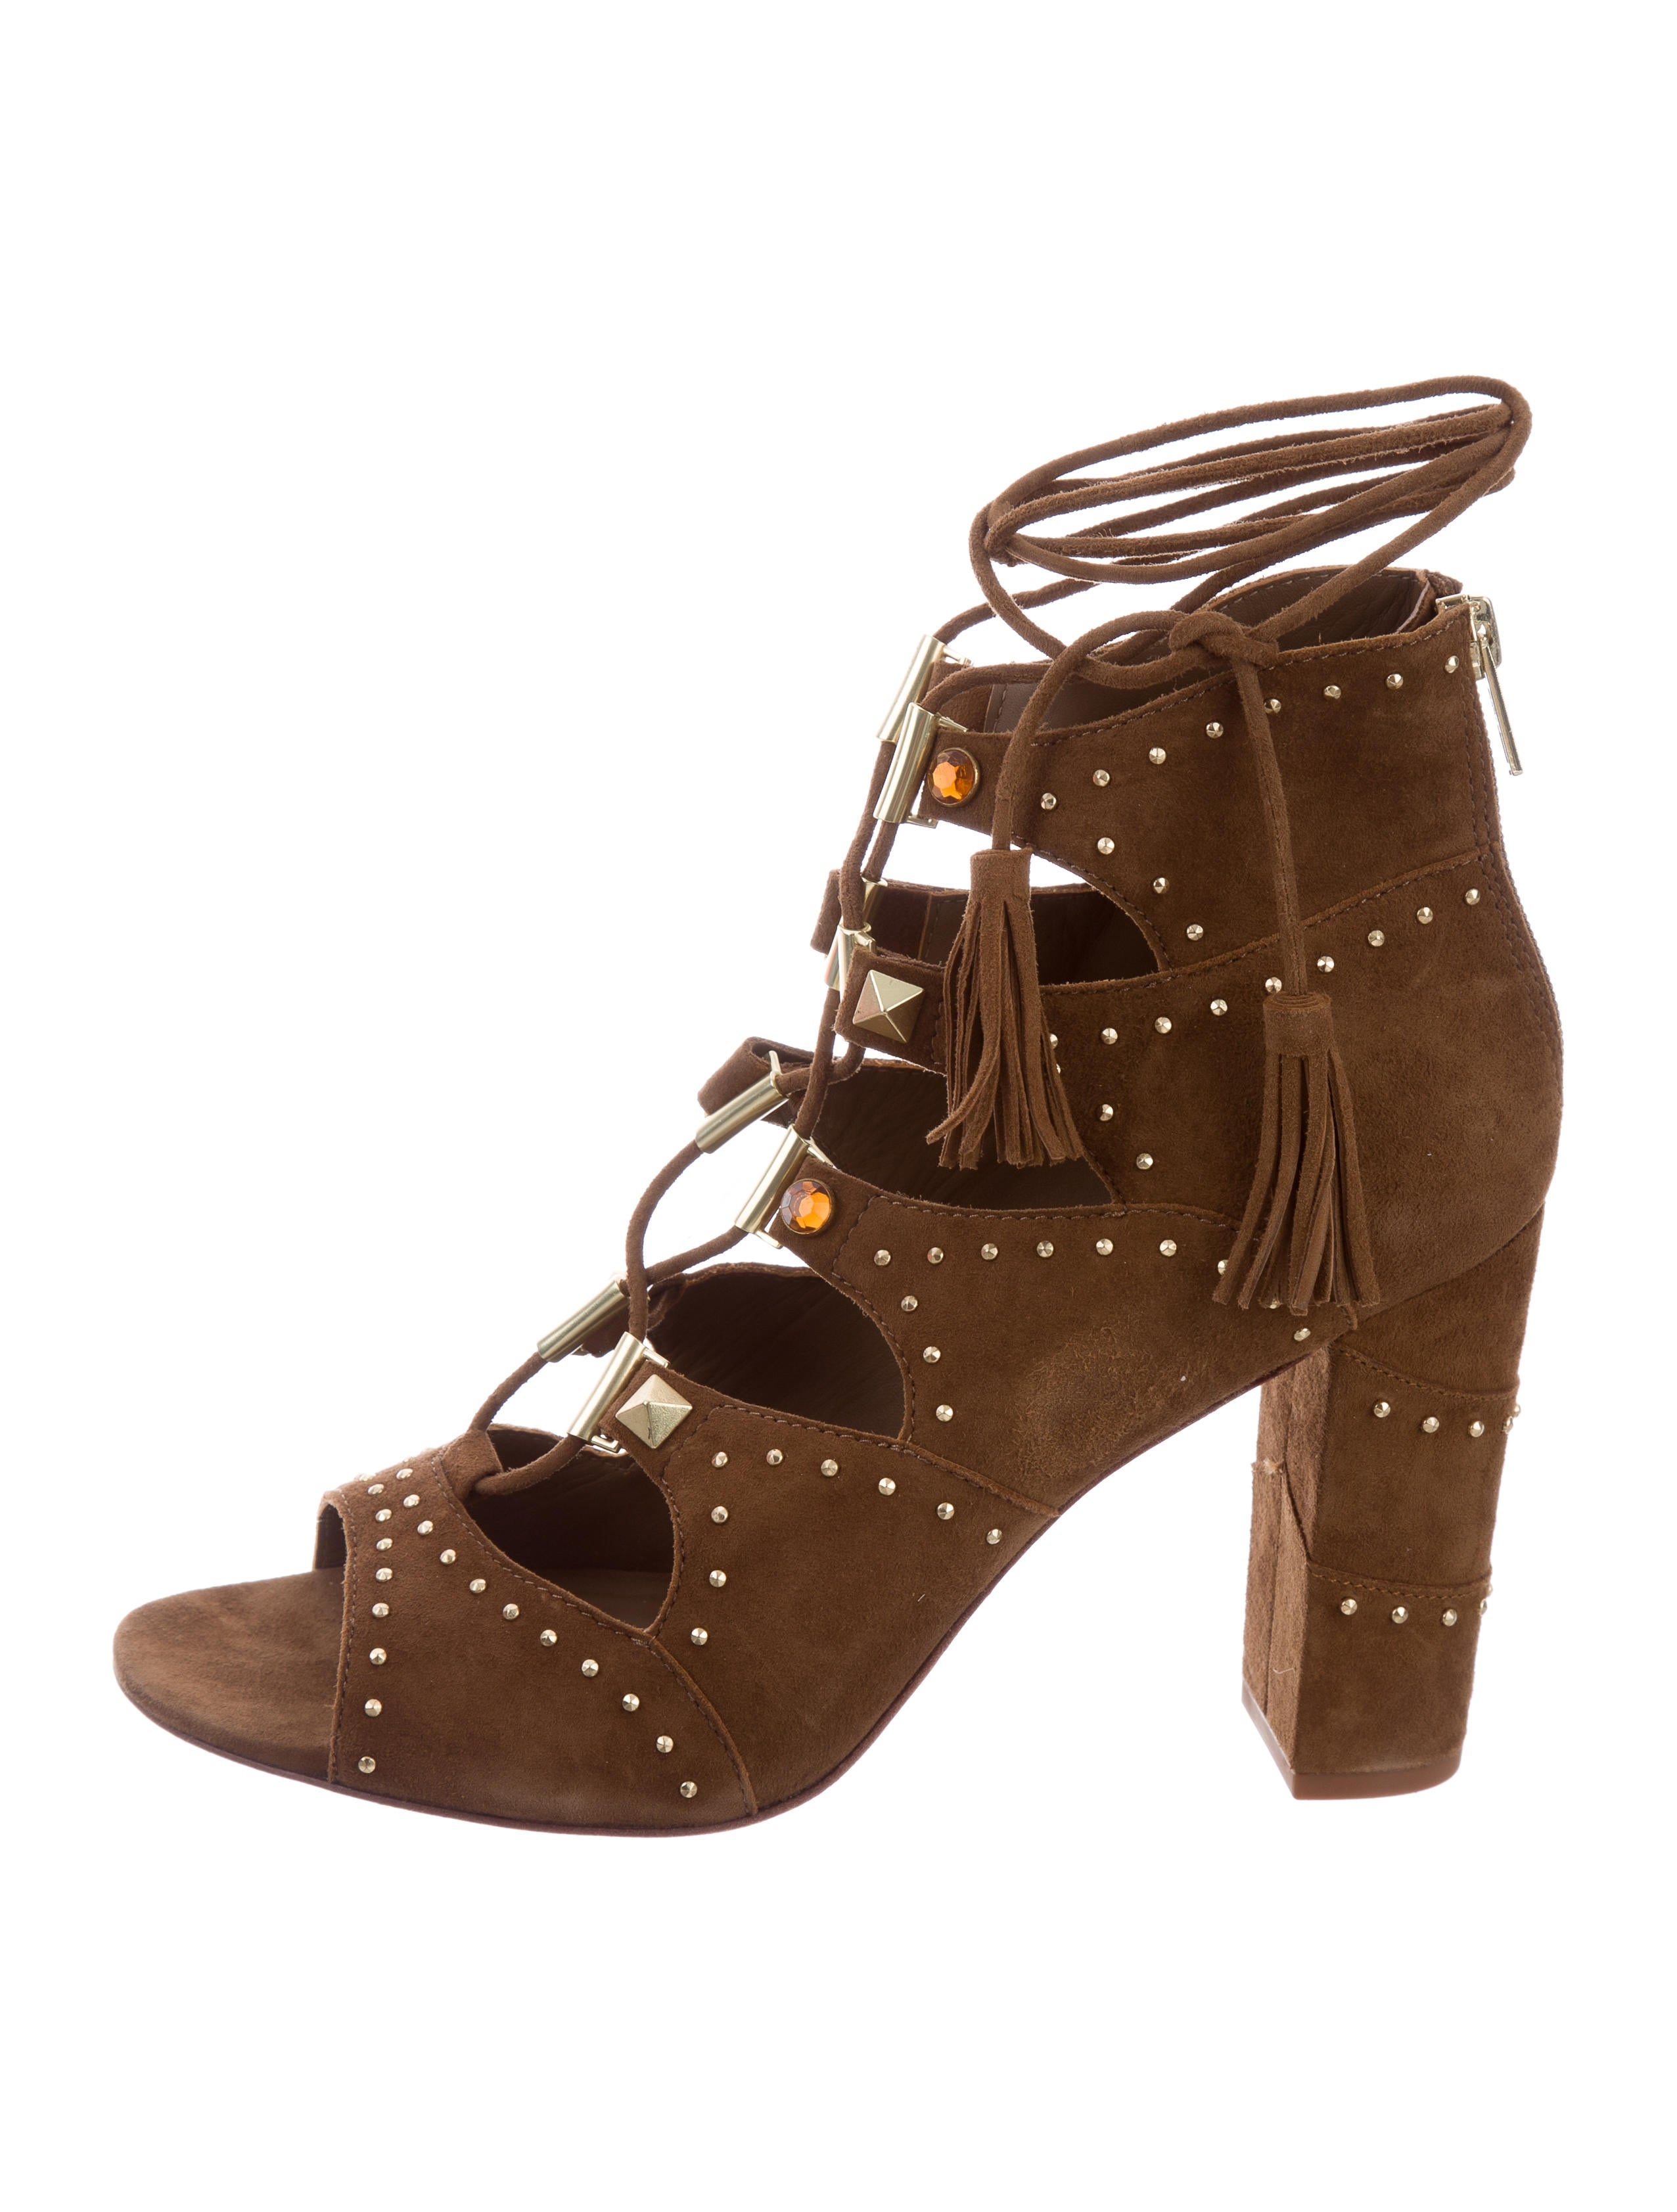 Ash Suede Caged Sandals w/ Tags big discount cheap online discount purchase very cheap for sale XvspG7cE